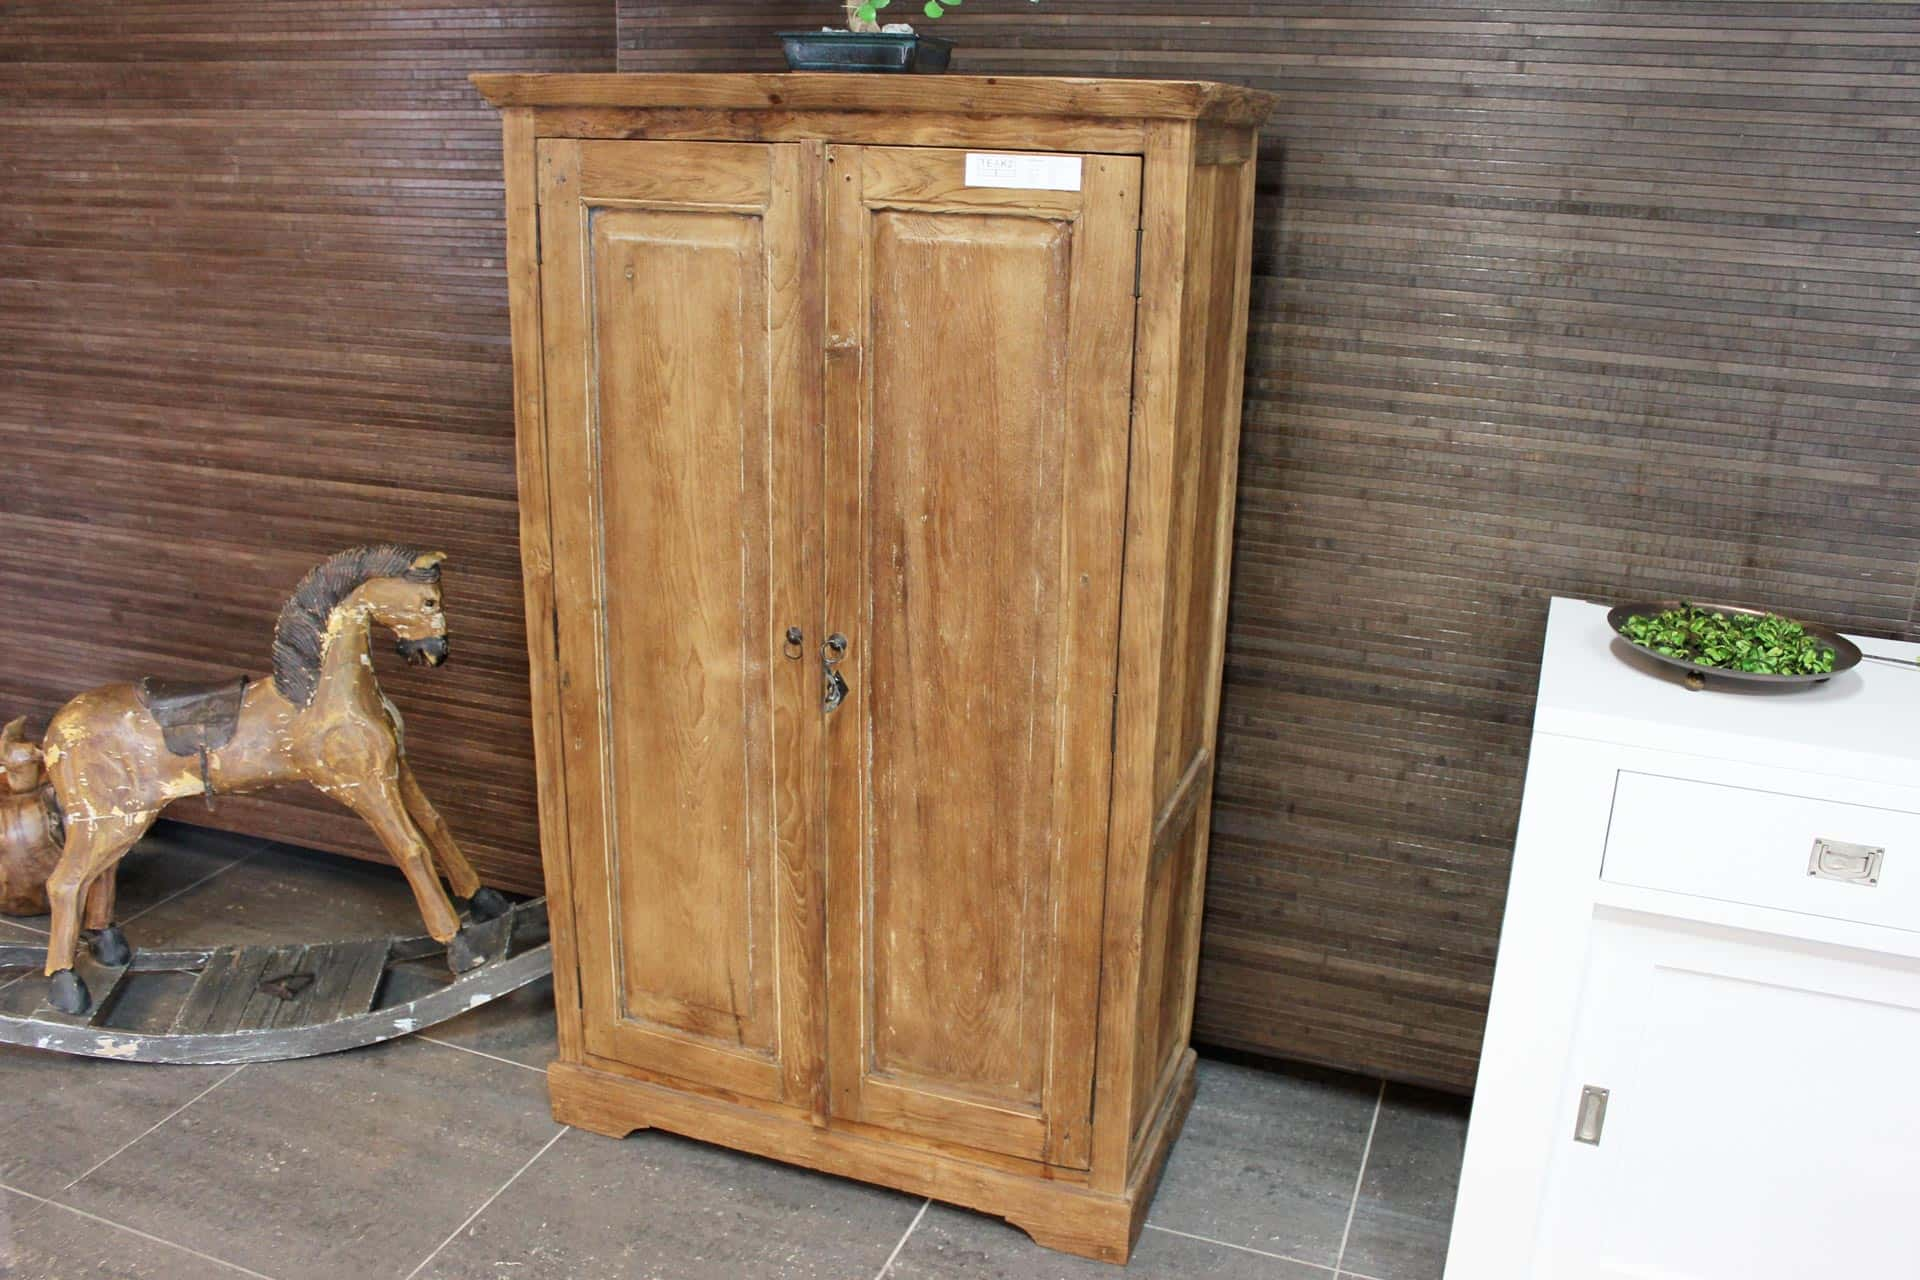 Cuci Rata 90 Old | teak cabinet from Indonesia with revolving doors. Small teak wall cupboard or low closed sideboard. Rural teak furniture at TEAK2.